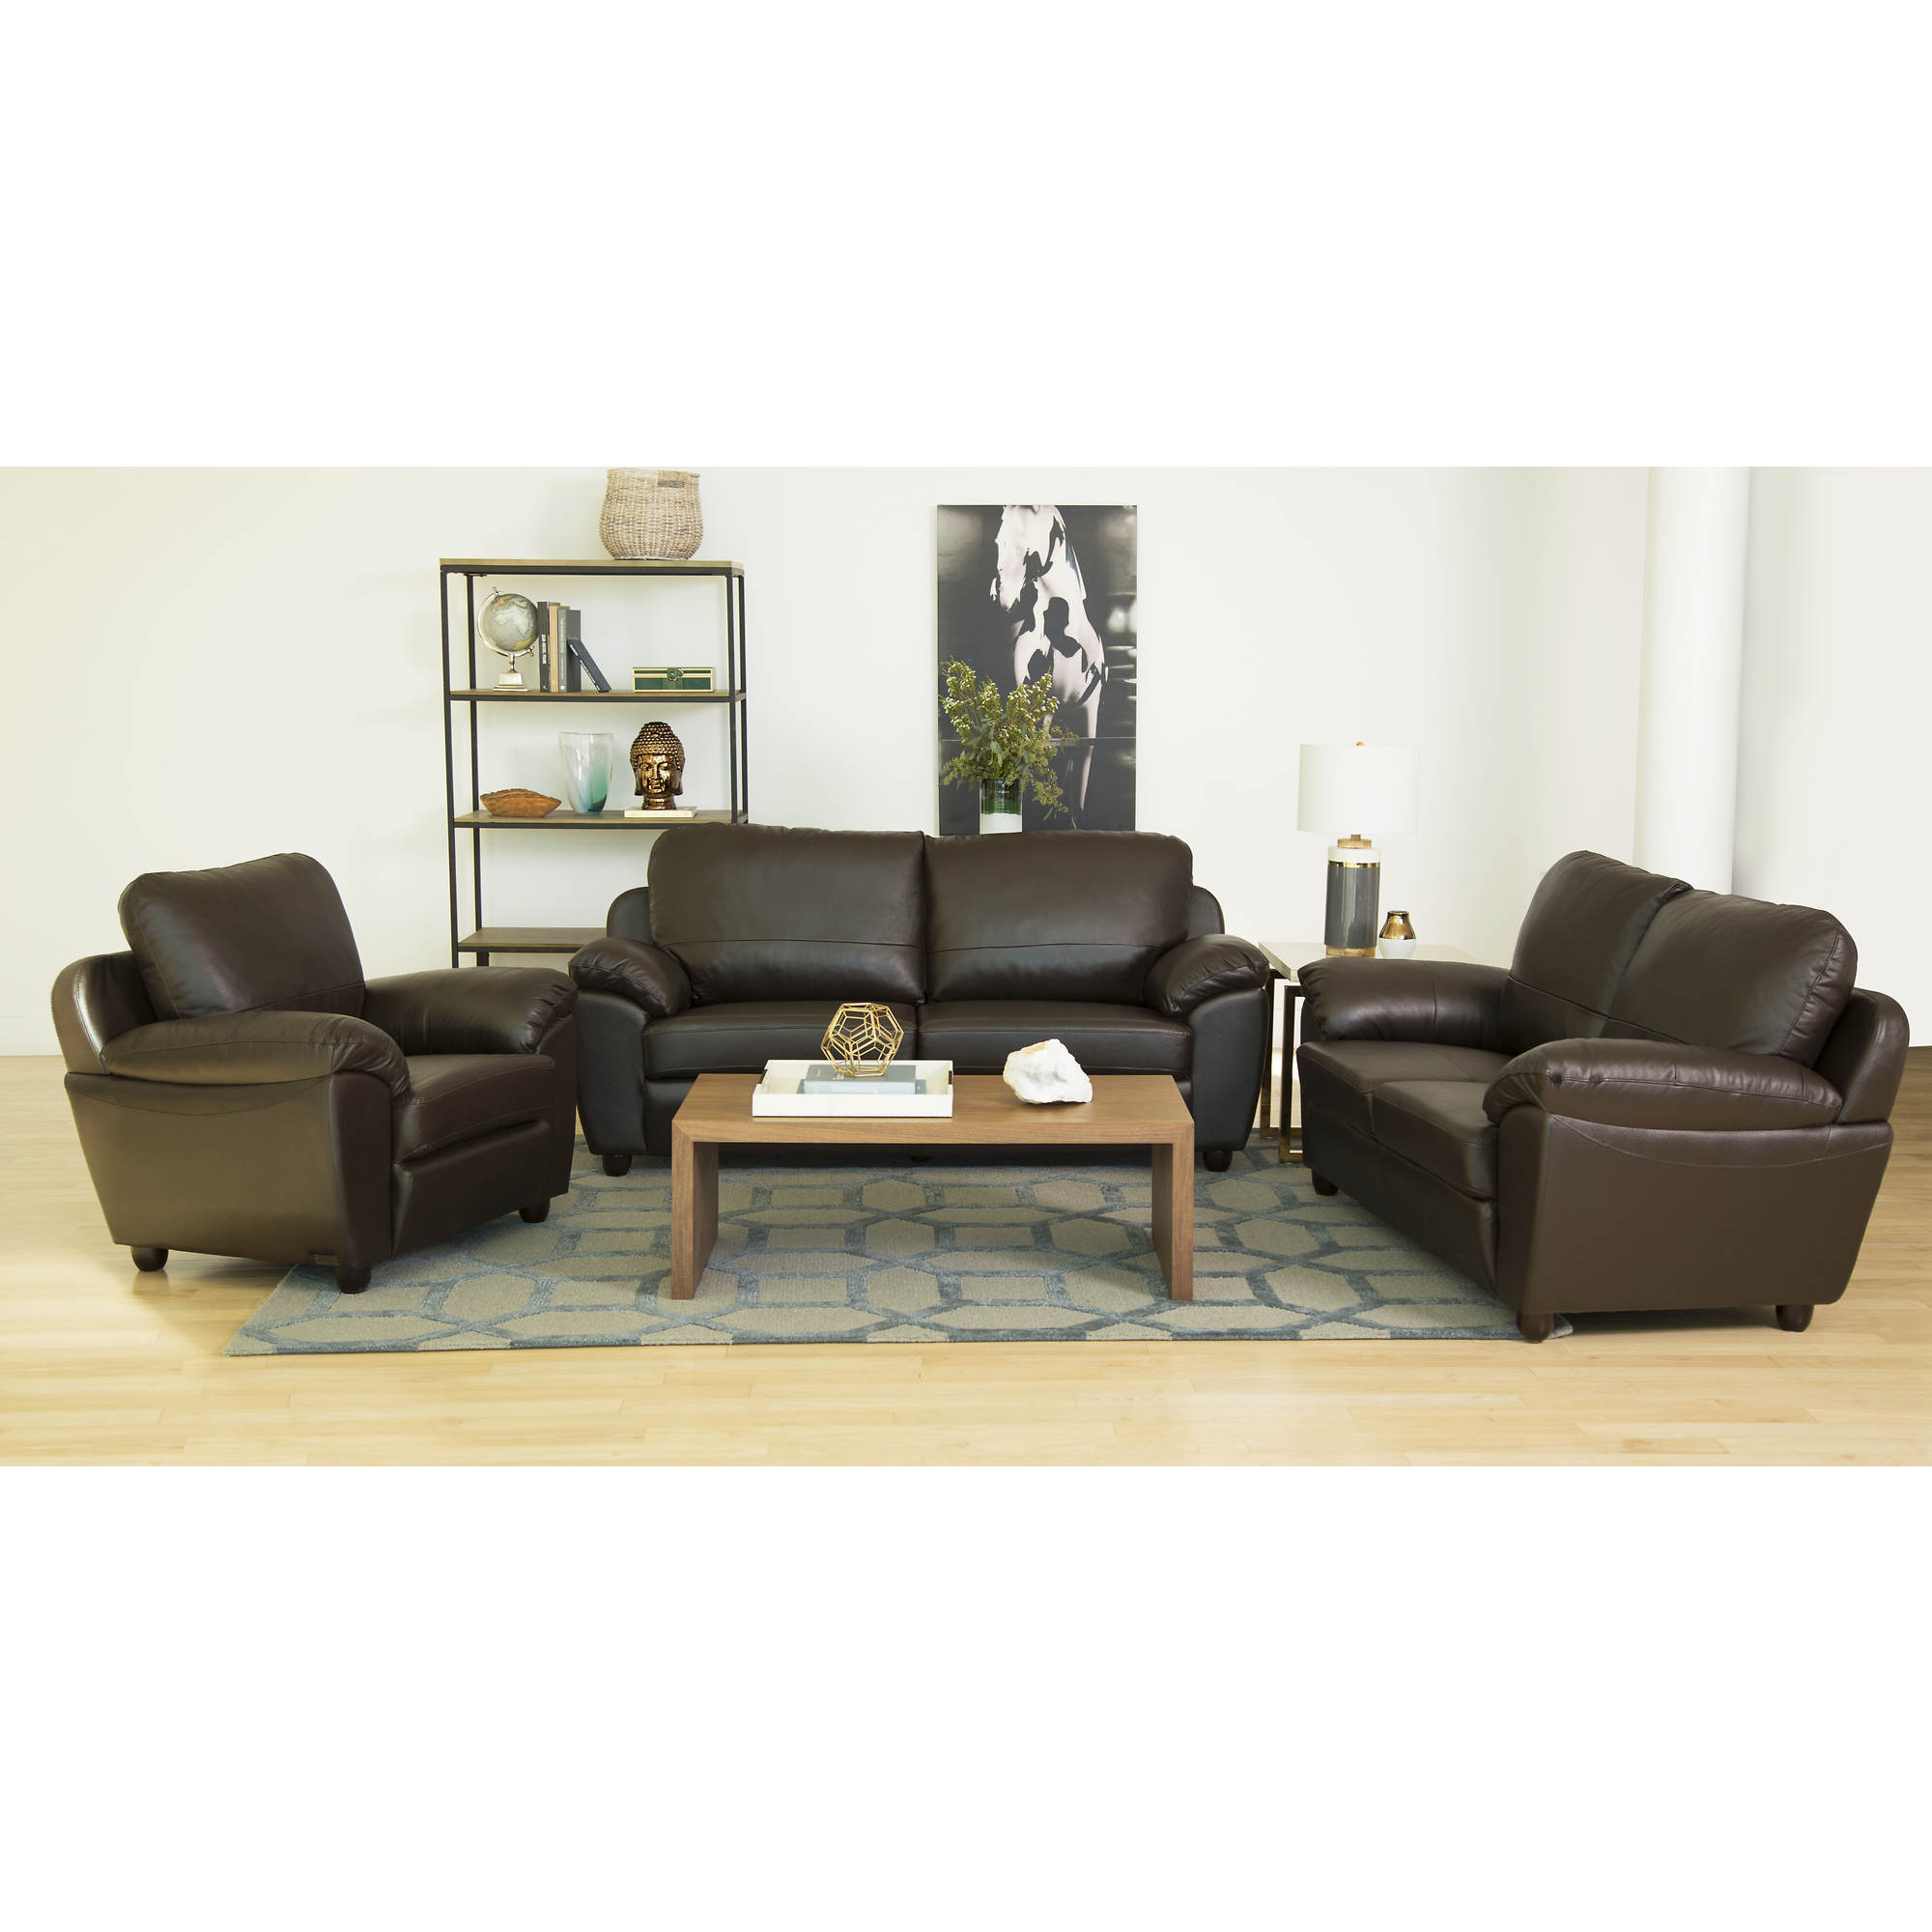 Living Room Colors With Brown Leather Furniture Abbyson Living Cosmopolitan 3 Pc Top Grain Italian Leather Living